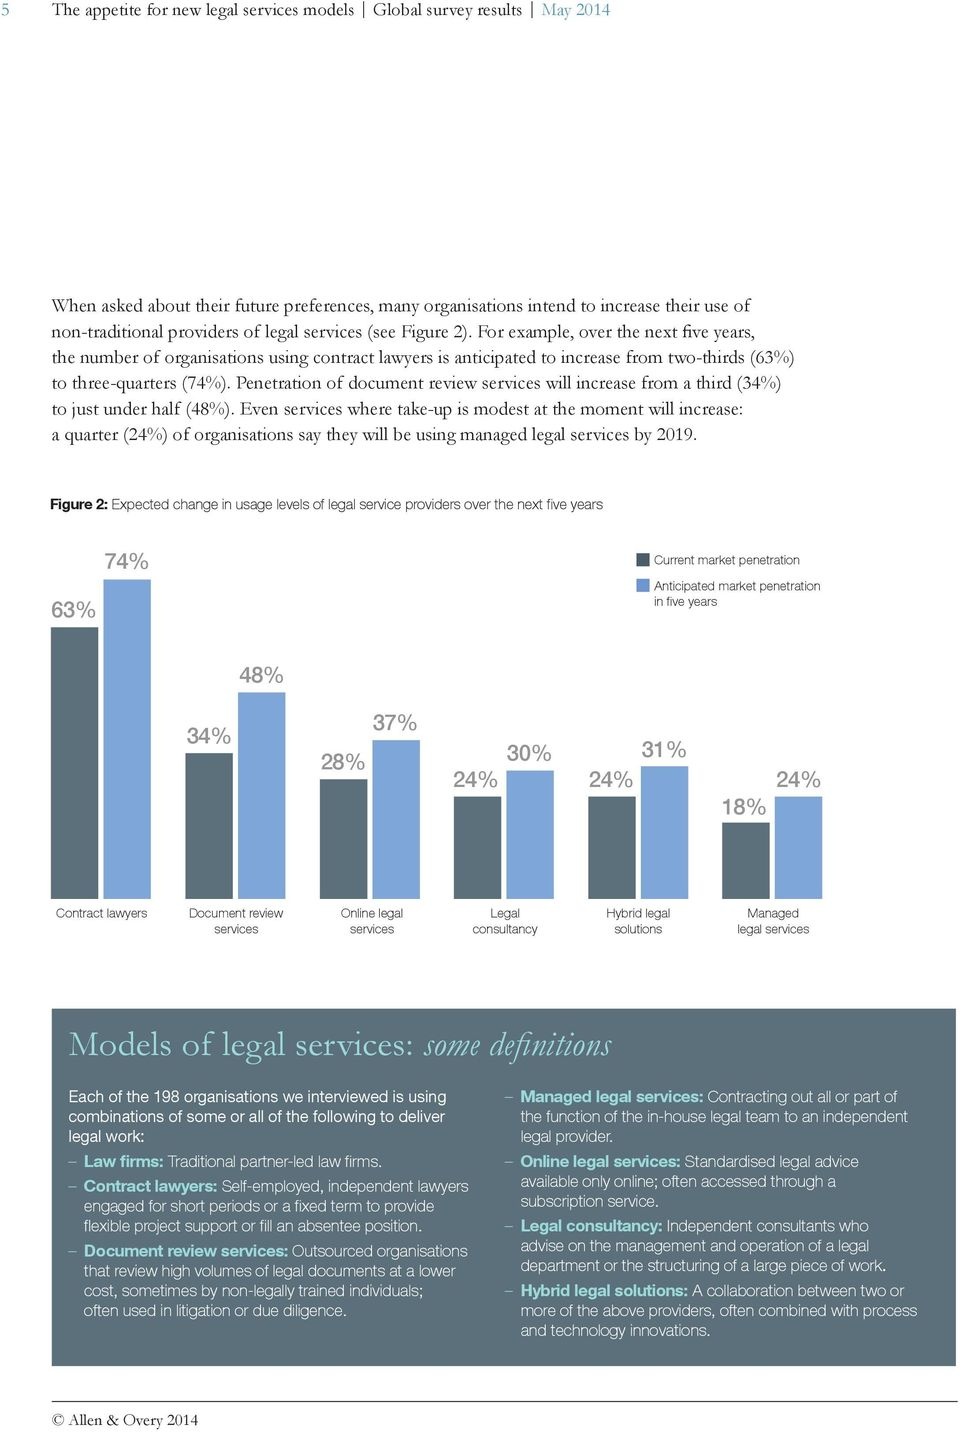 Penetration of document review services will increase from a third (34%) to just under half (48%).